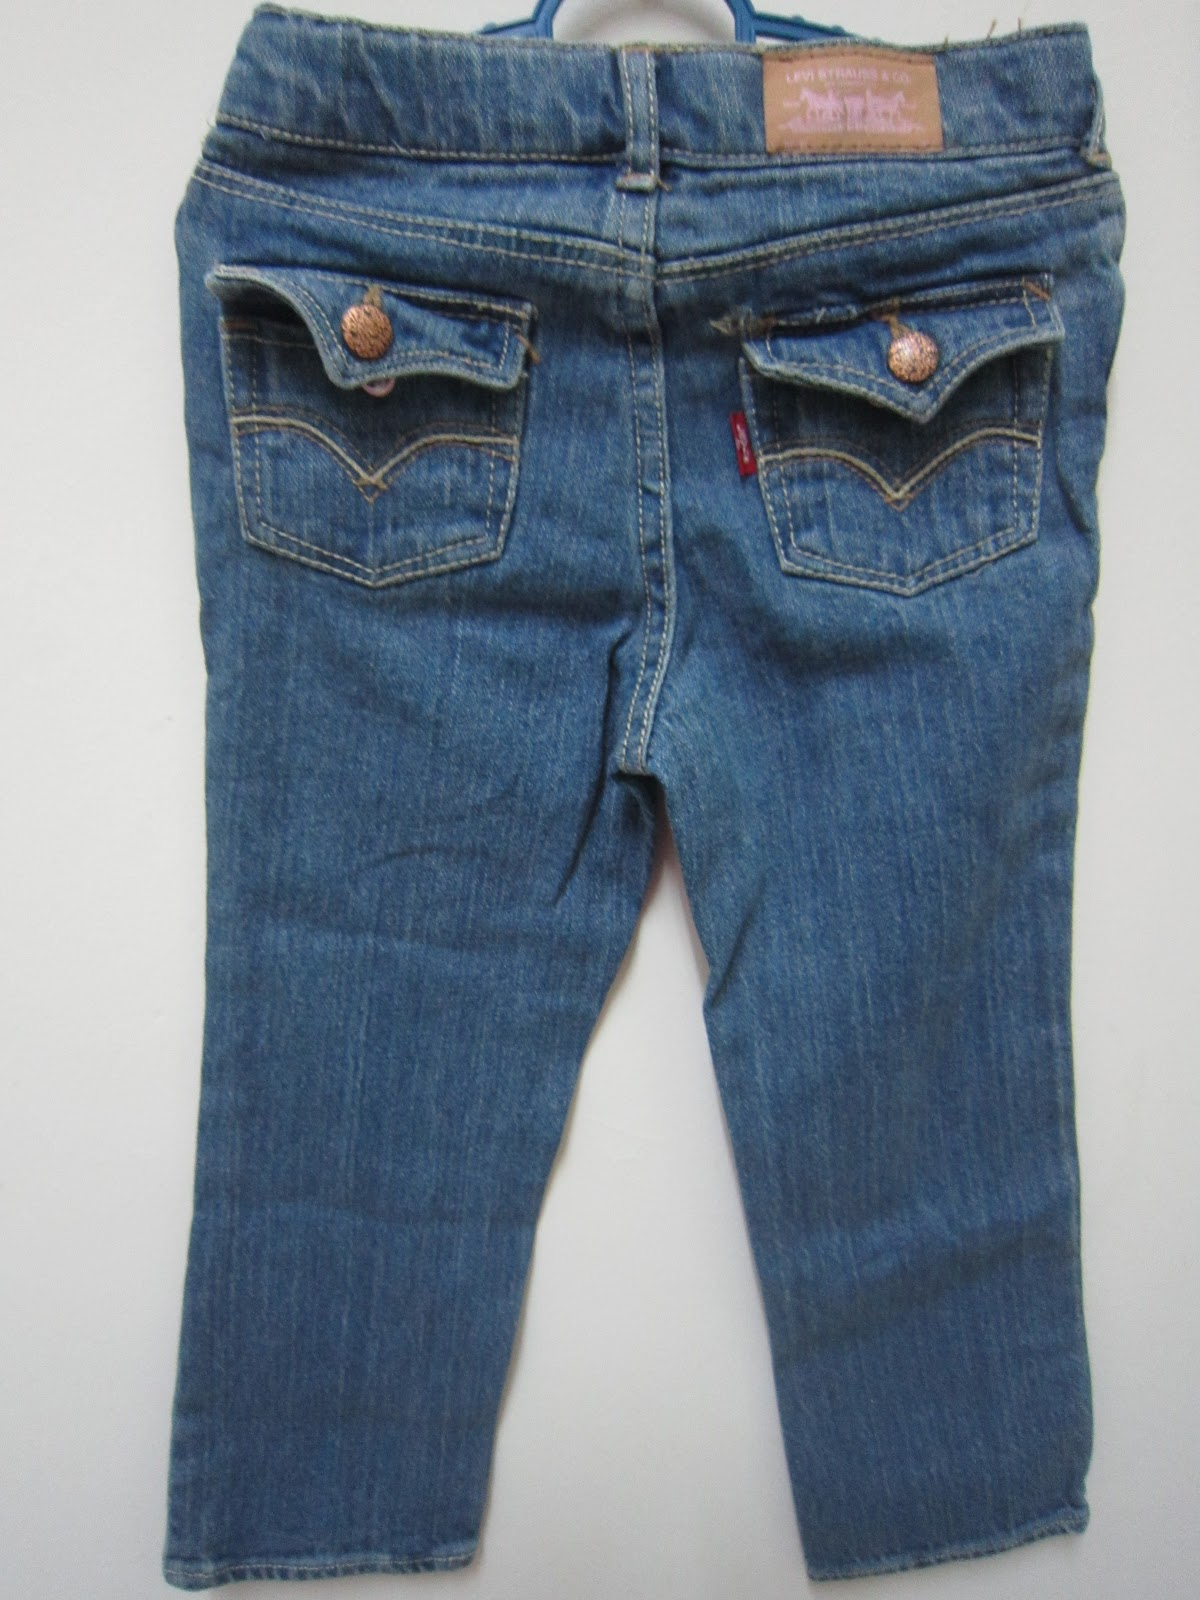 Looking for Women's Sale Jeans & Shorts? Shop insurancecompanies.cf for great prices and high quality products from all the brands you know and love. Check out more here!